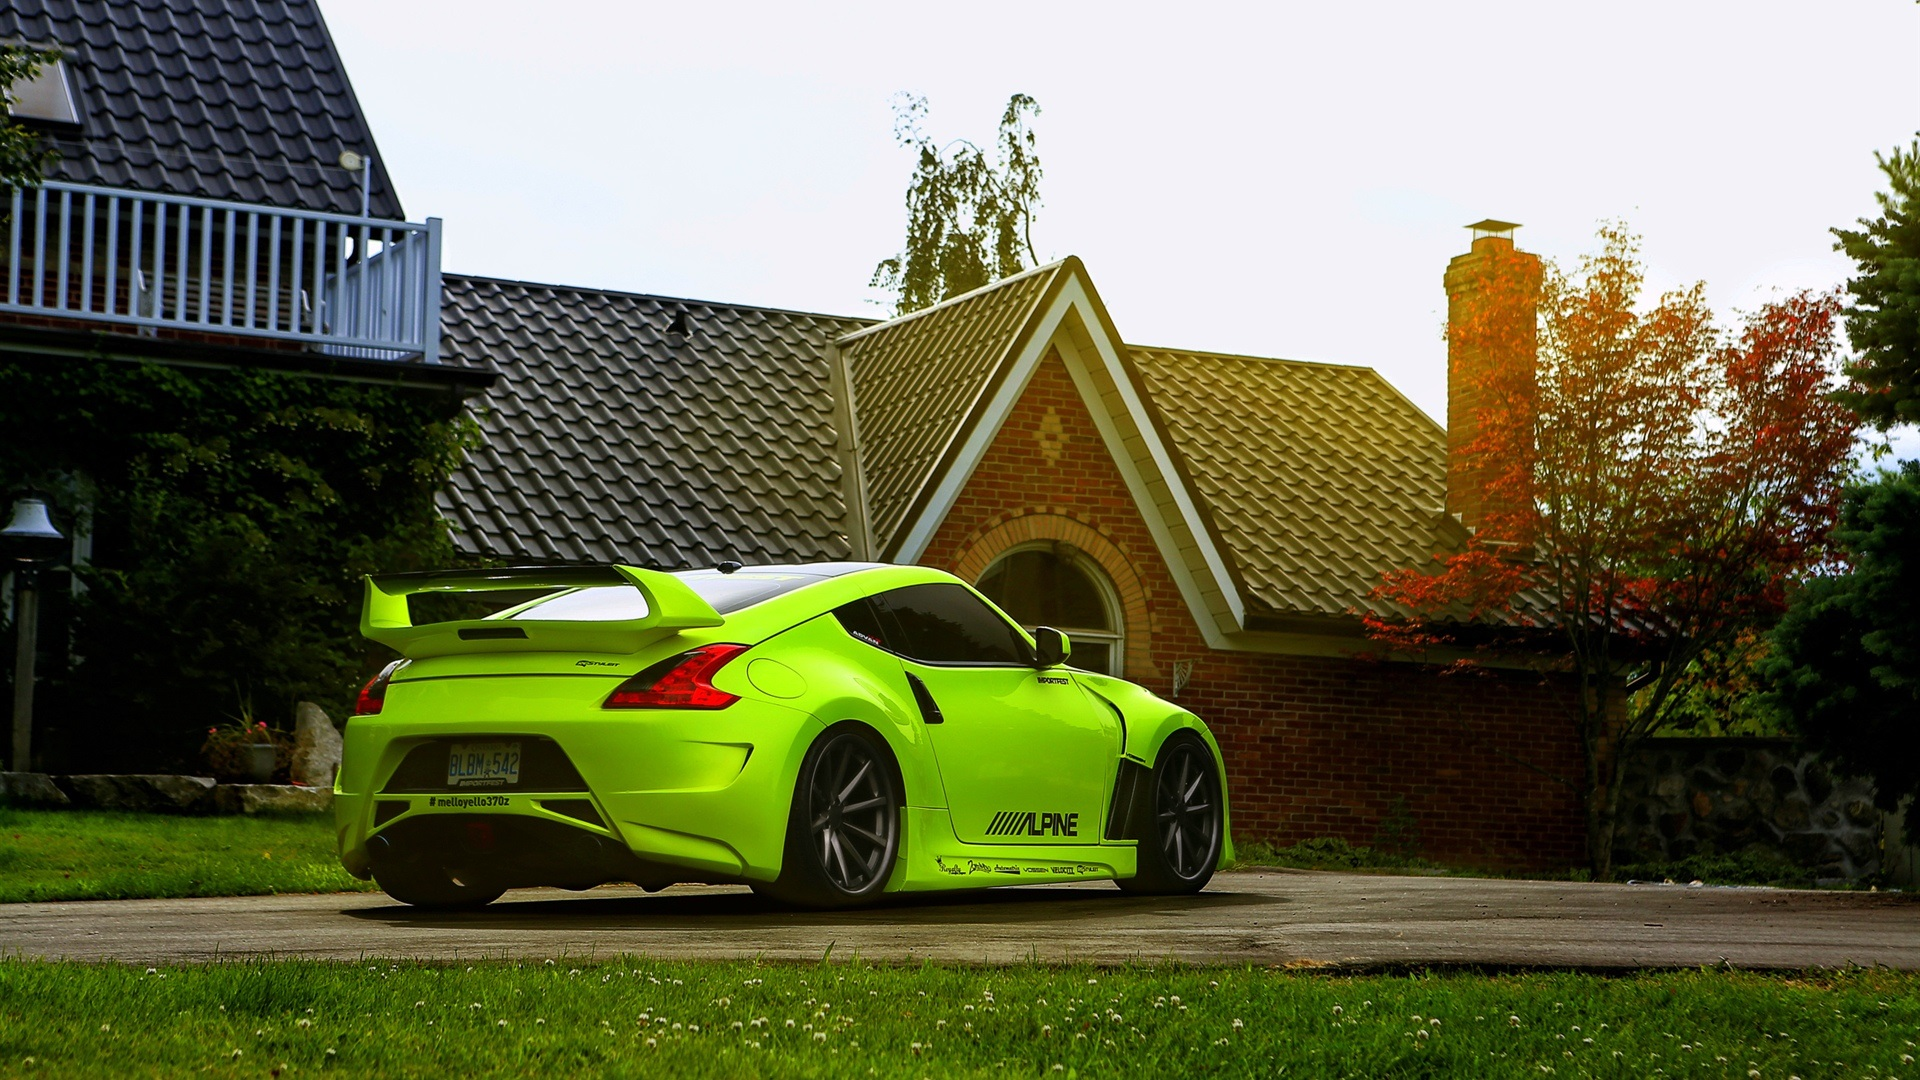 Download wallpaper 1920x1080 nissan 370z green car house for Best house wallpaper